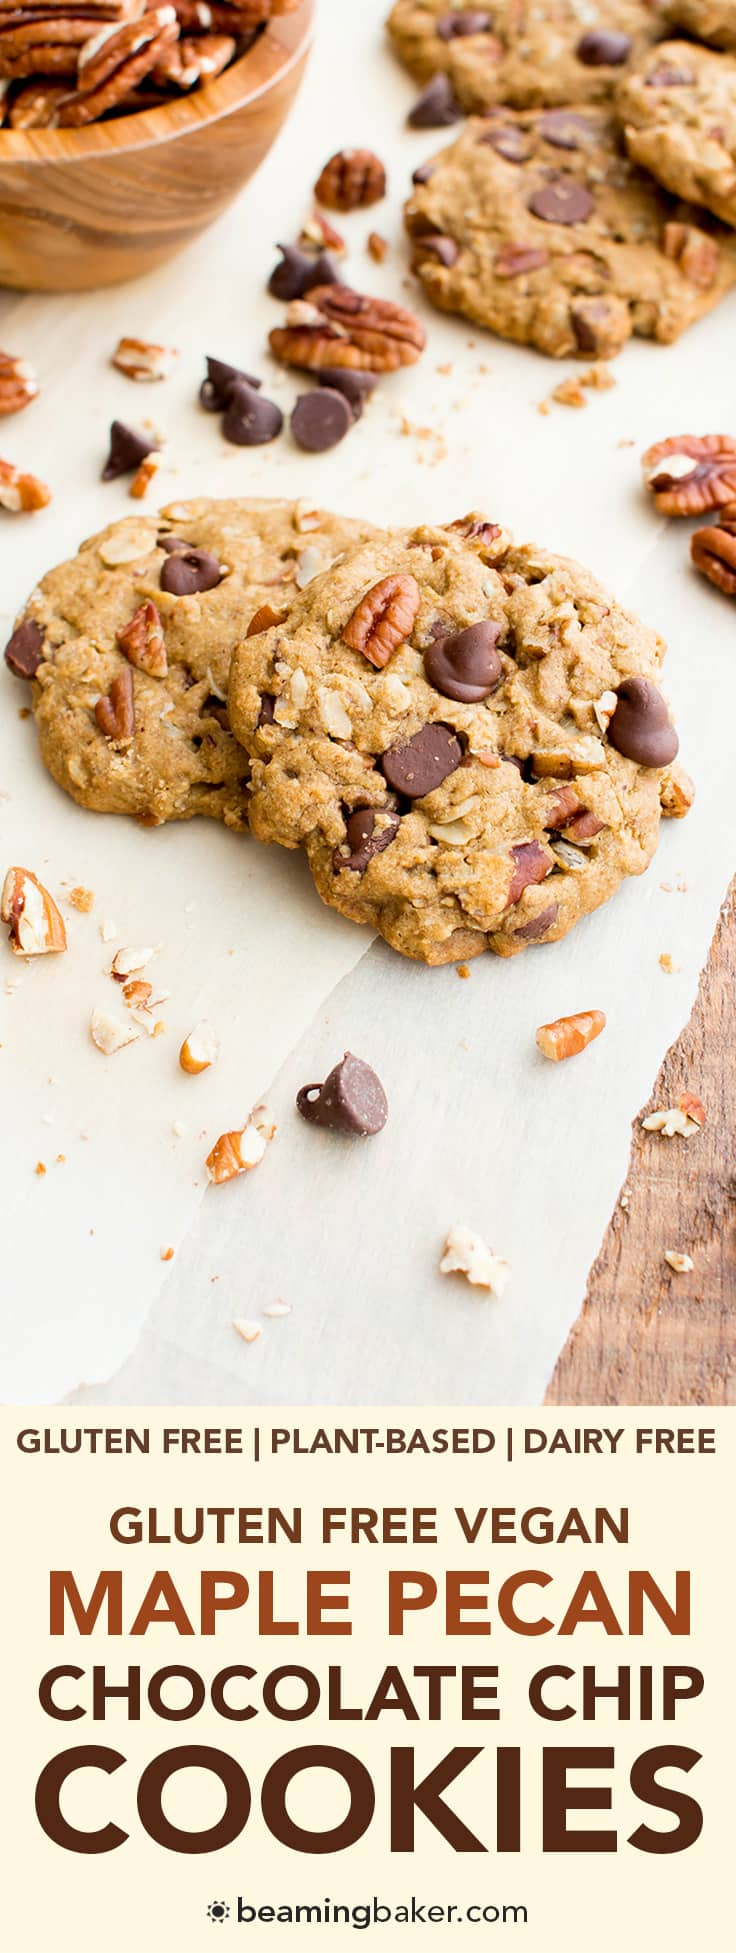 ... oat flour chocolate chip cookies bursting with maple and pecans. #